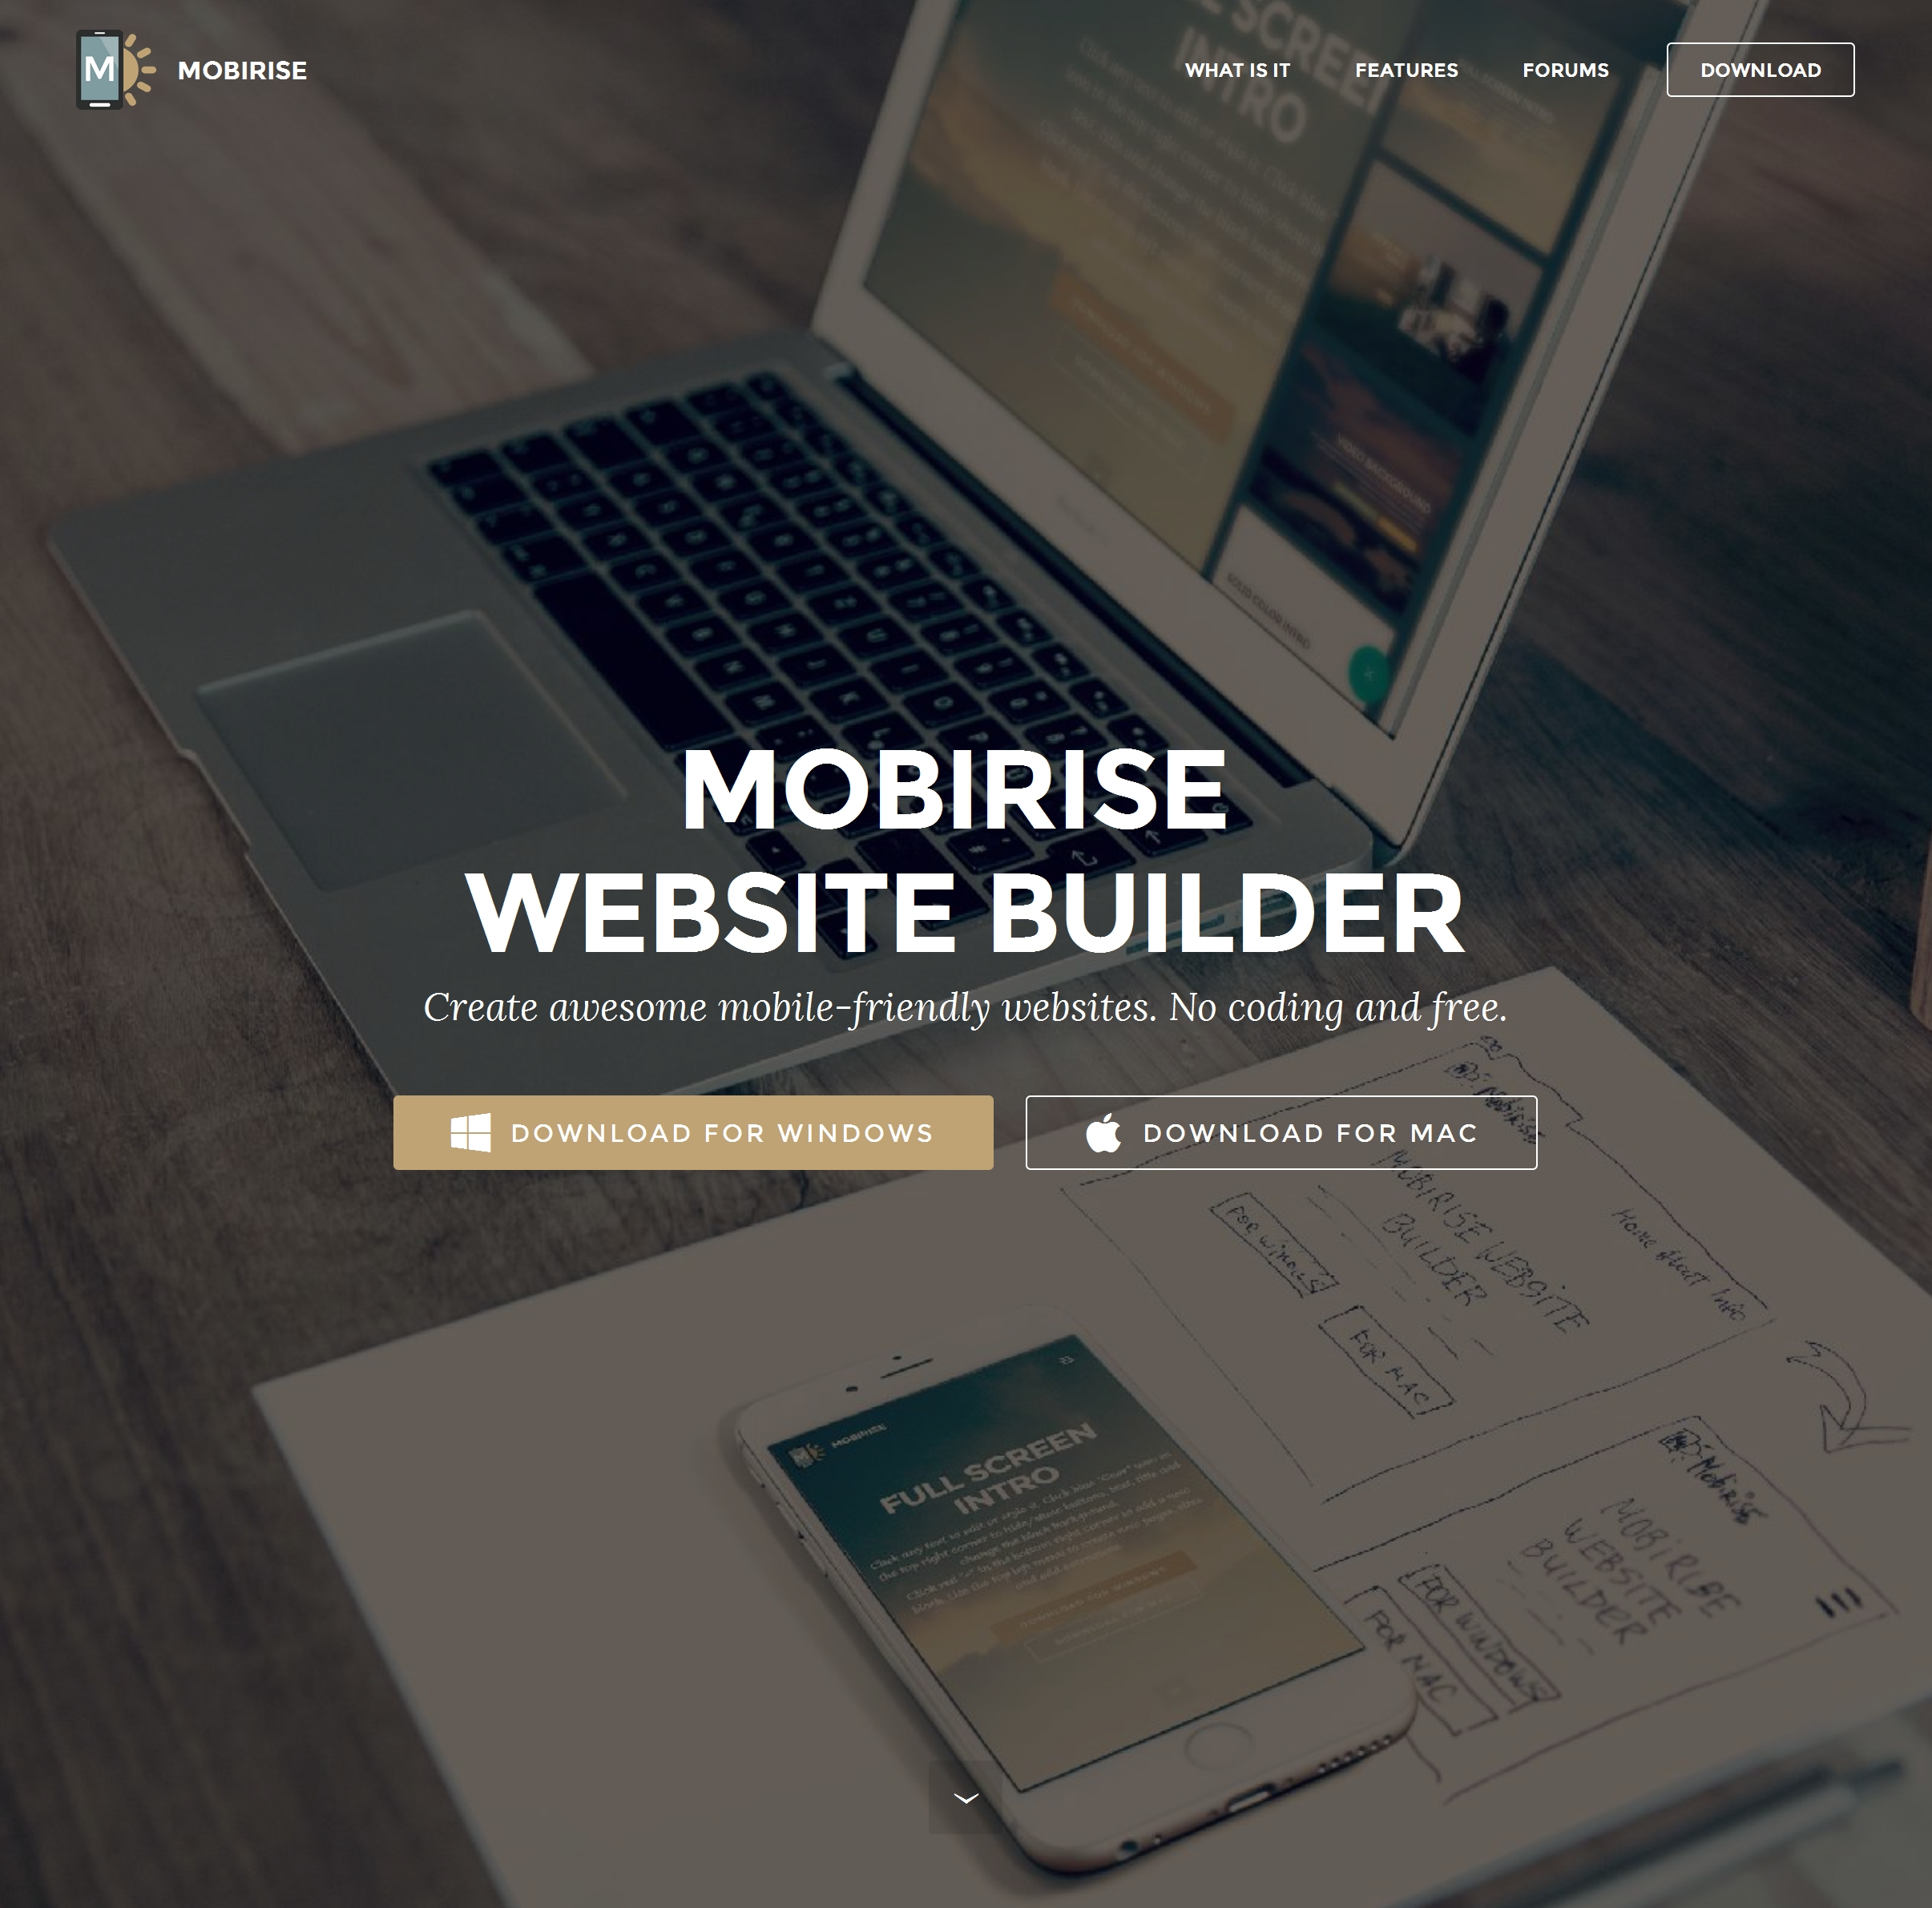 Best Free Website Builder? Mobirise Review